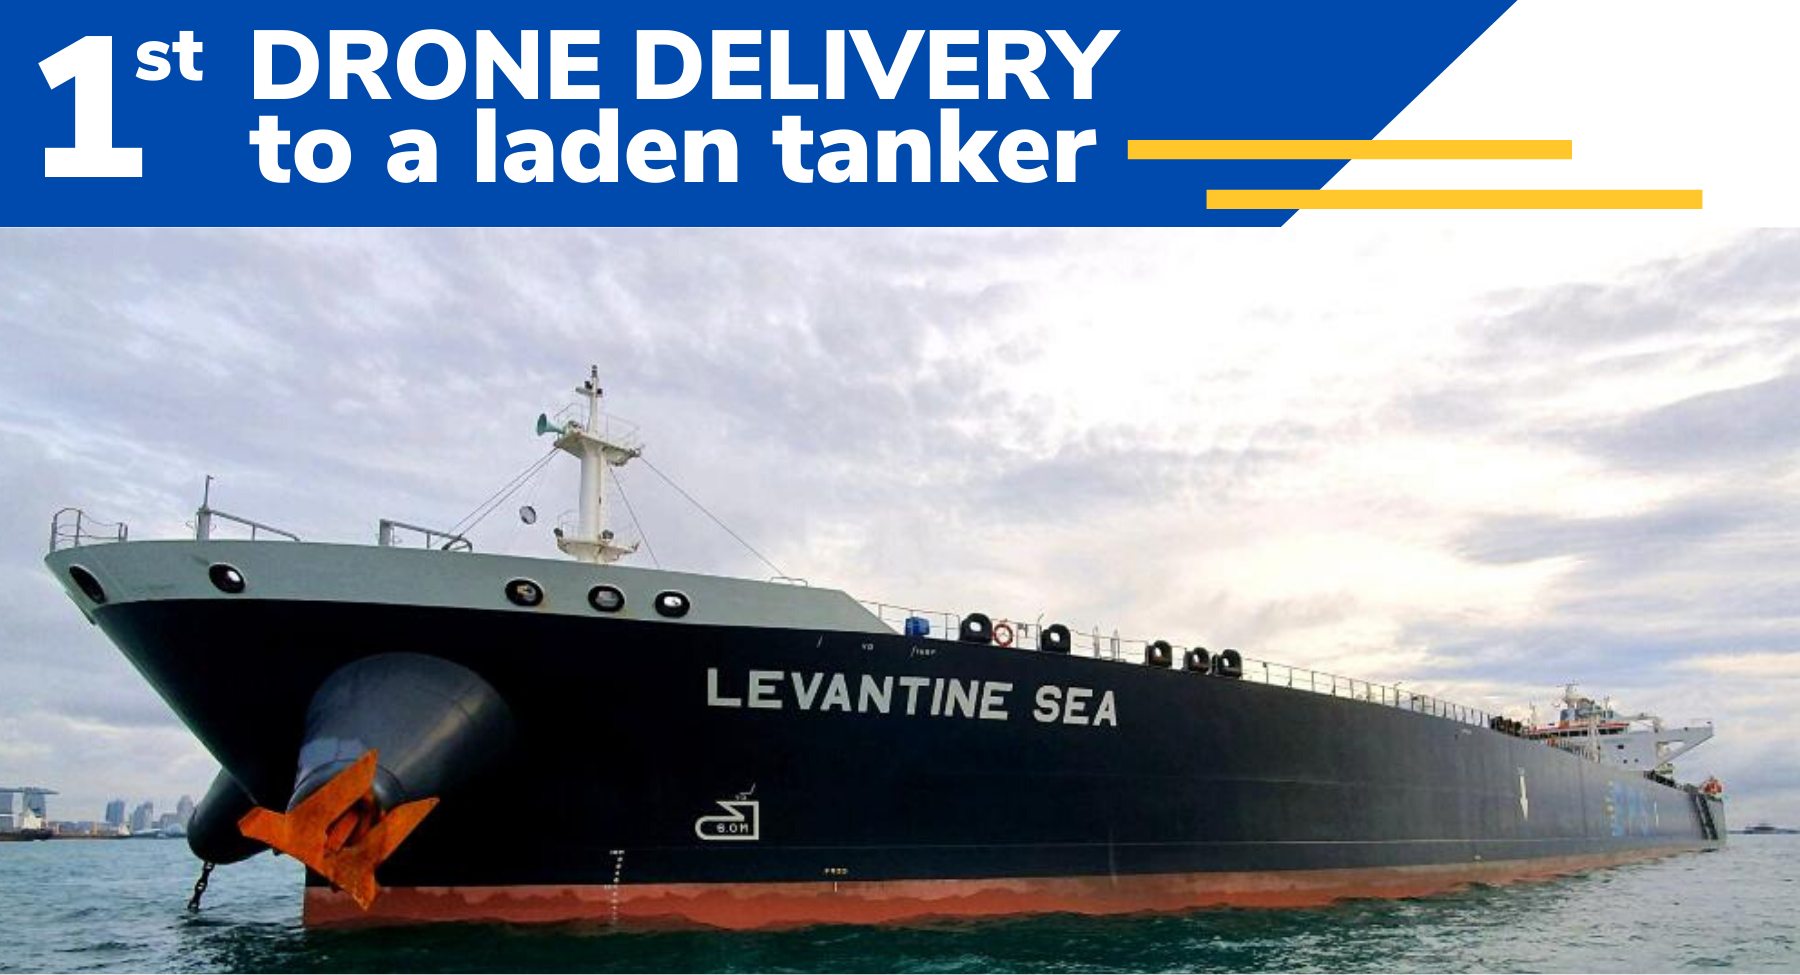 eps and f-drones complete first drone delivery to laden tanker